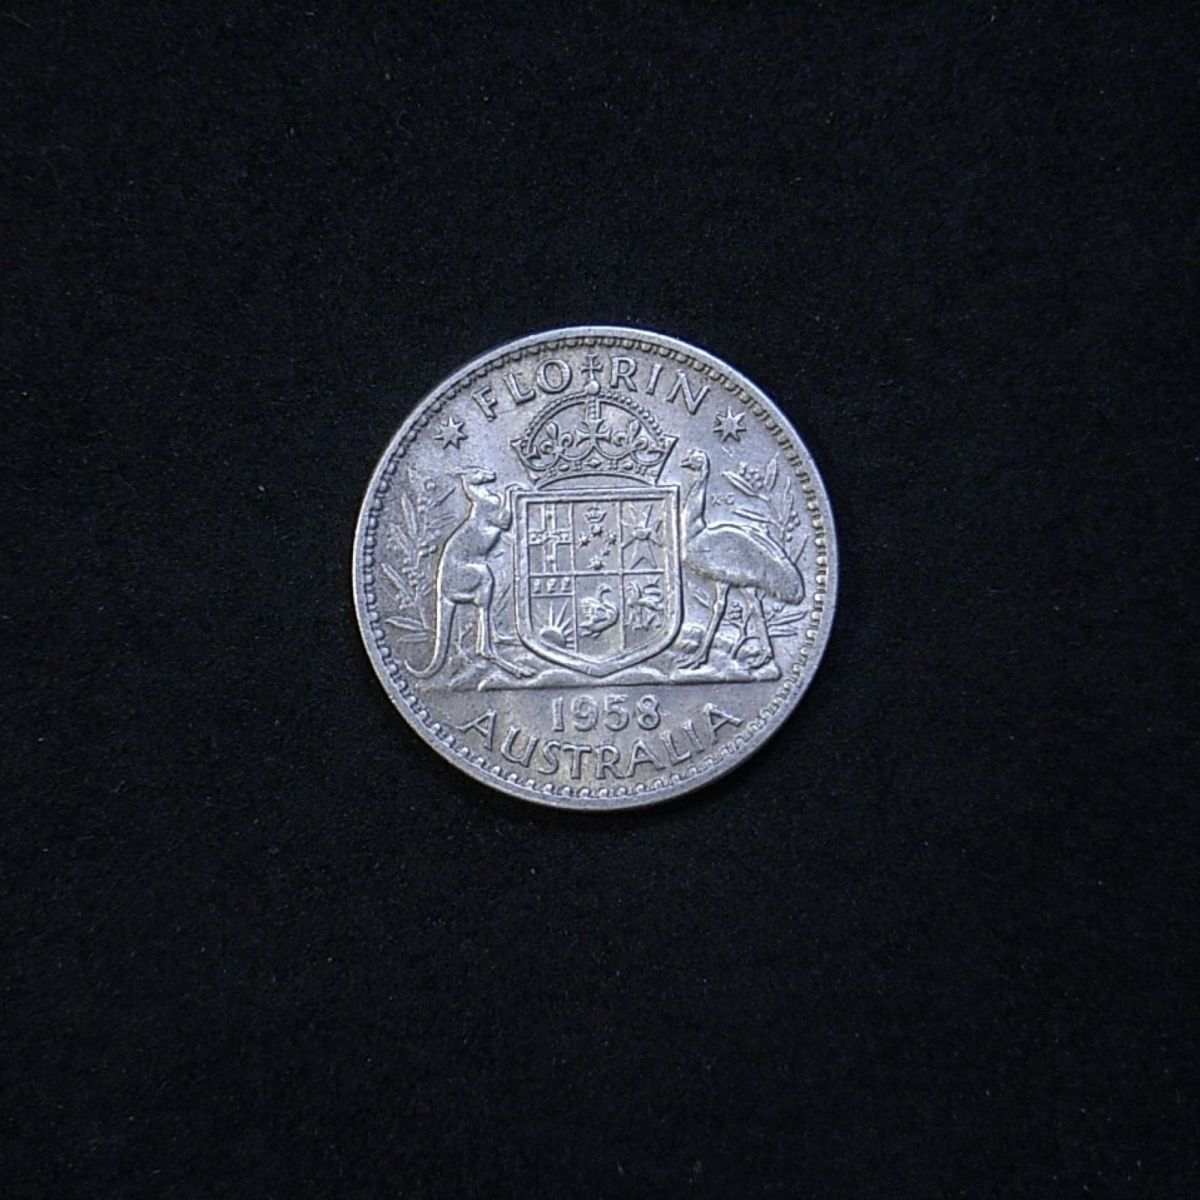 Aus Florin 1958 reverse showing overall appearance and lustre